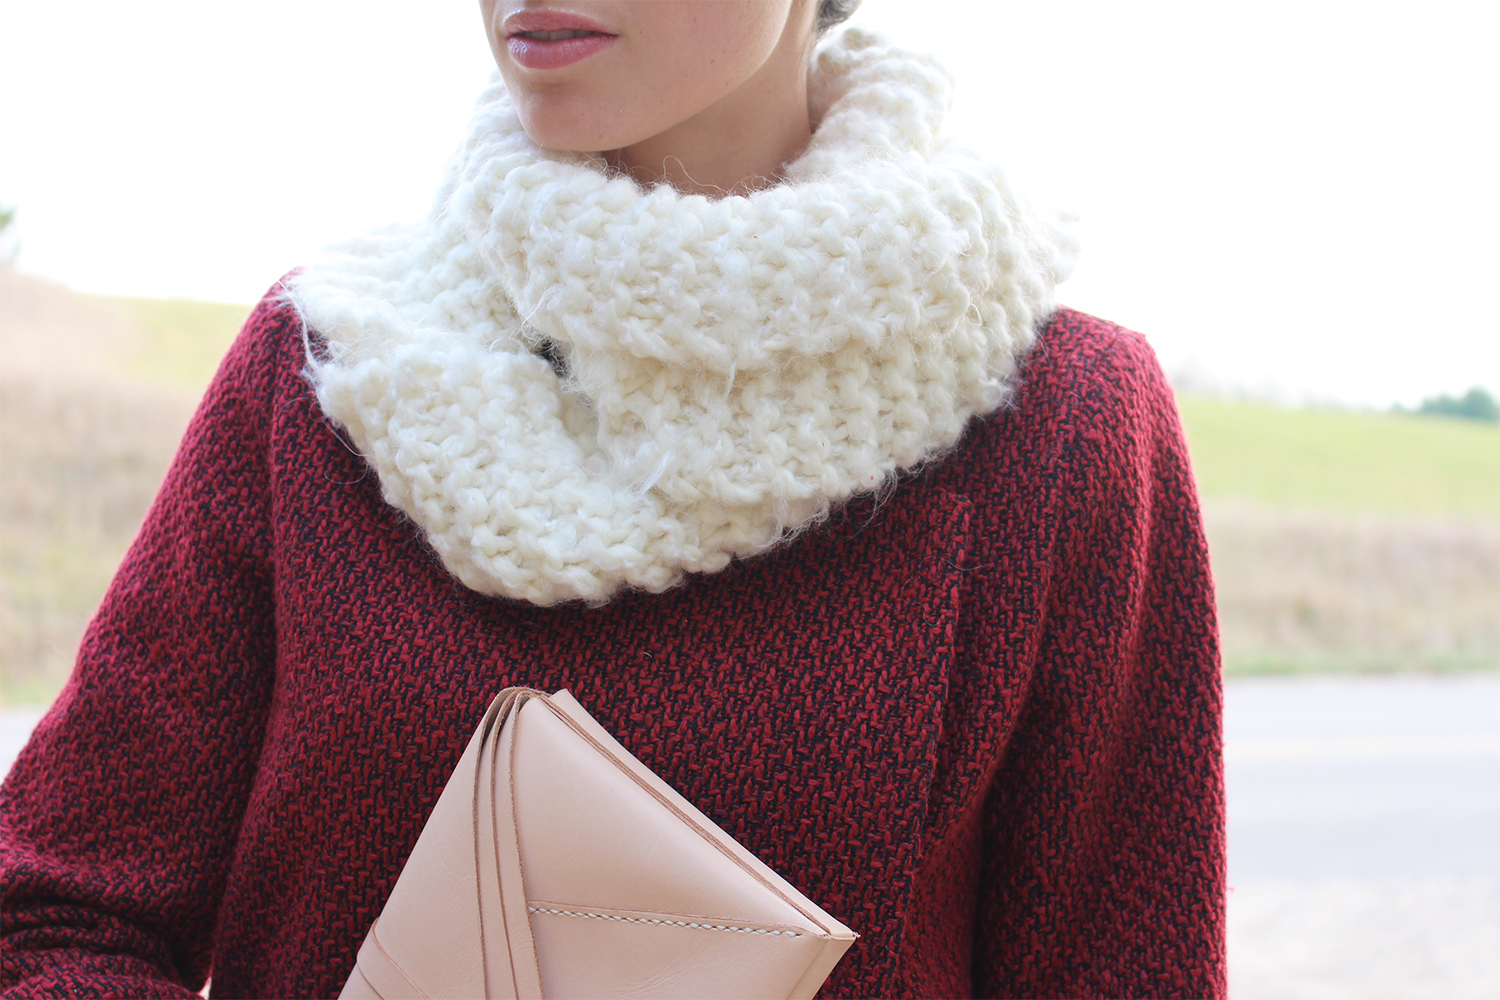 Style Bee in a red coat and infinity scarf.